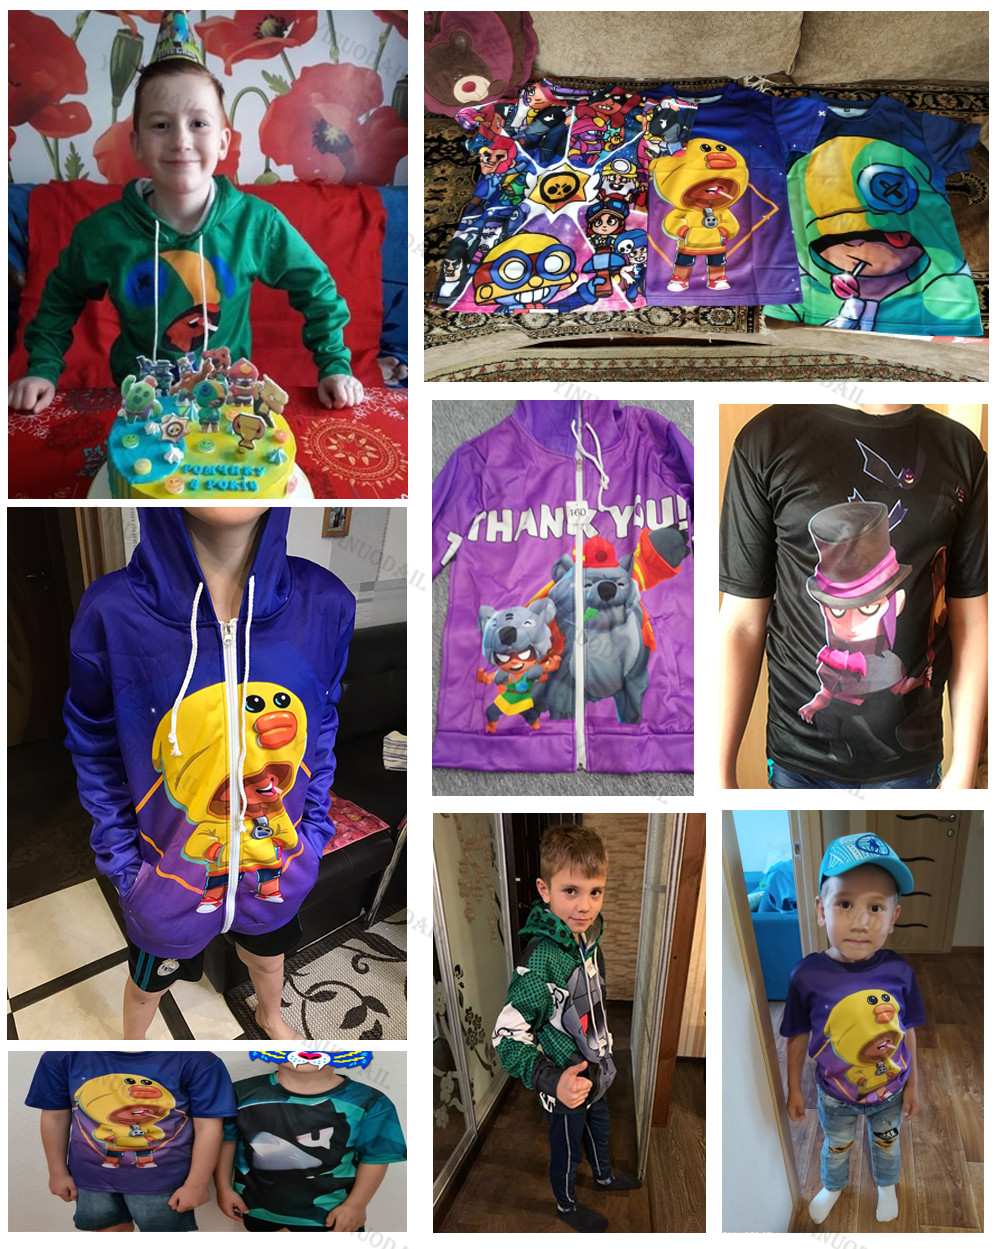 6 To 19 Years Kids Leon t shirts Brawling Spike and Star, Fashion Shooting Game PRIMO 3D Boys Girls Cartoon Tops Teen Clothes 4